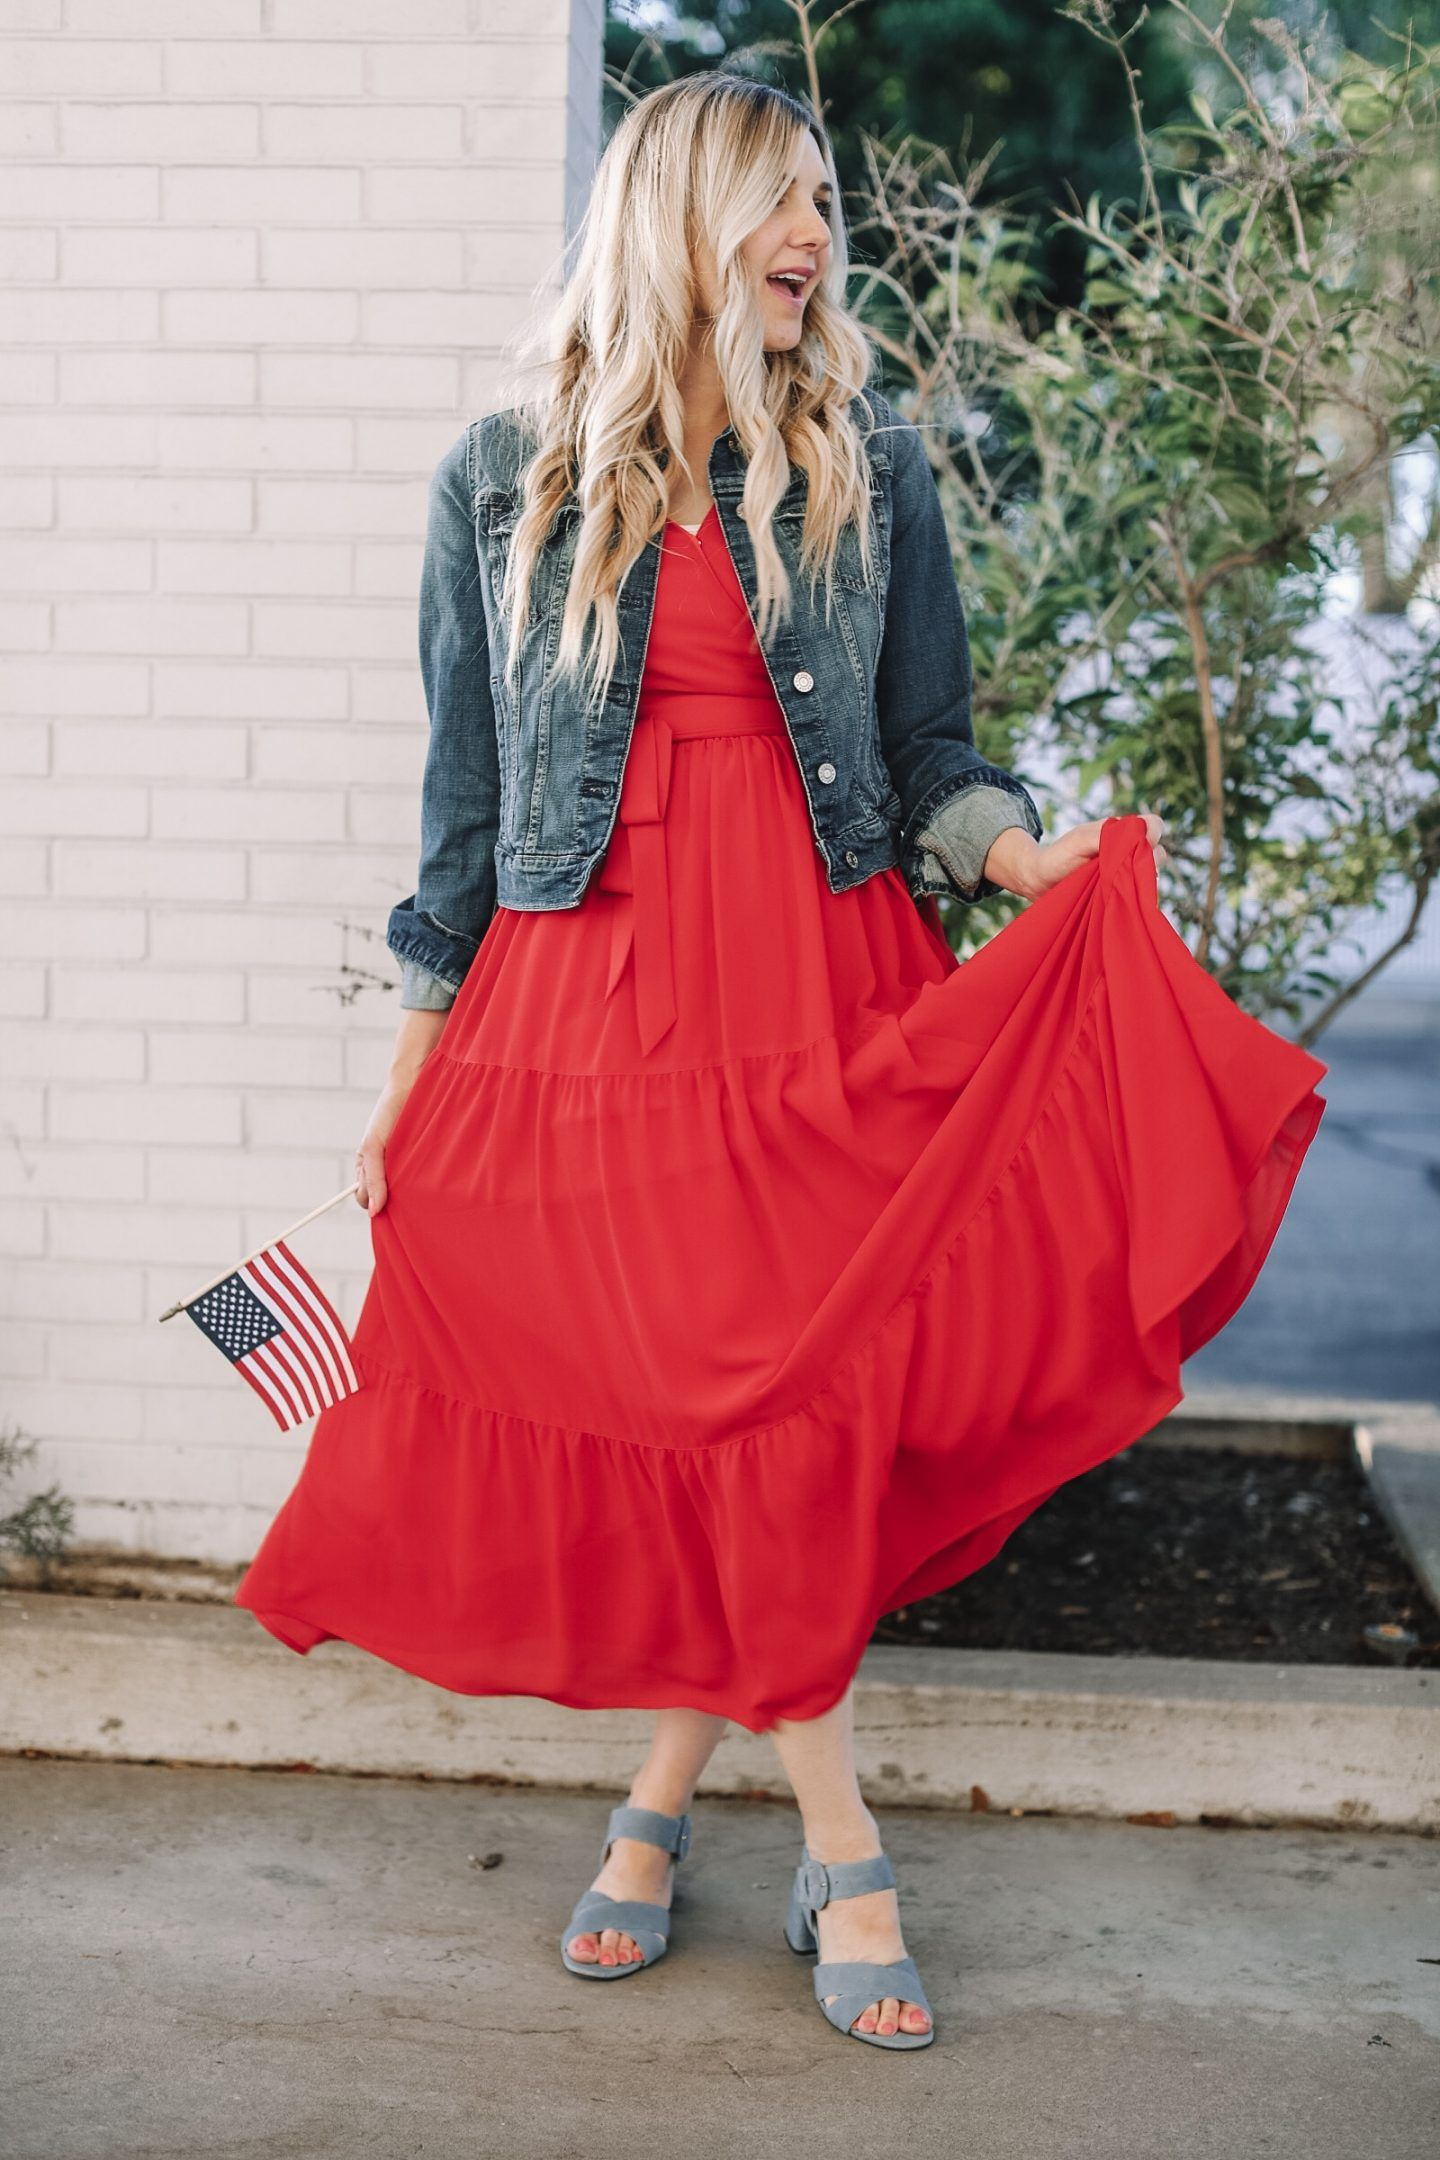 4th Of July Outfit Inspiration Part 4 Red Dress Red Maxi Dress Rachel Parcell Dress Denim Jacket Four Red Dress Casual Red Dress Maxi Outfit Inspirations [ 2160 x 1440 Pixel ]